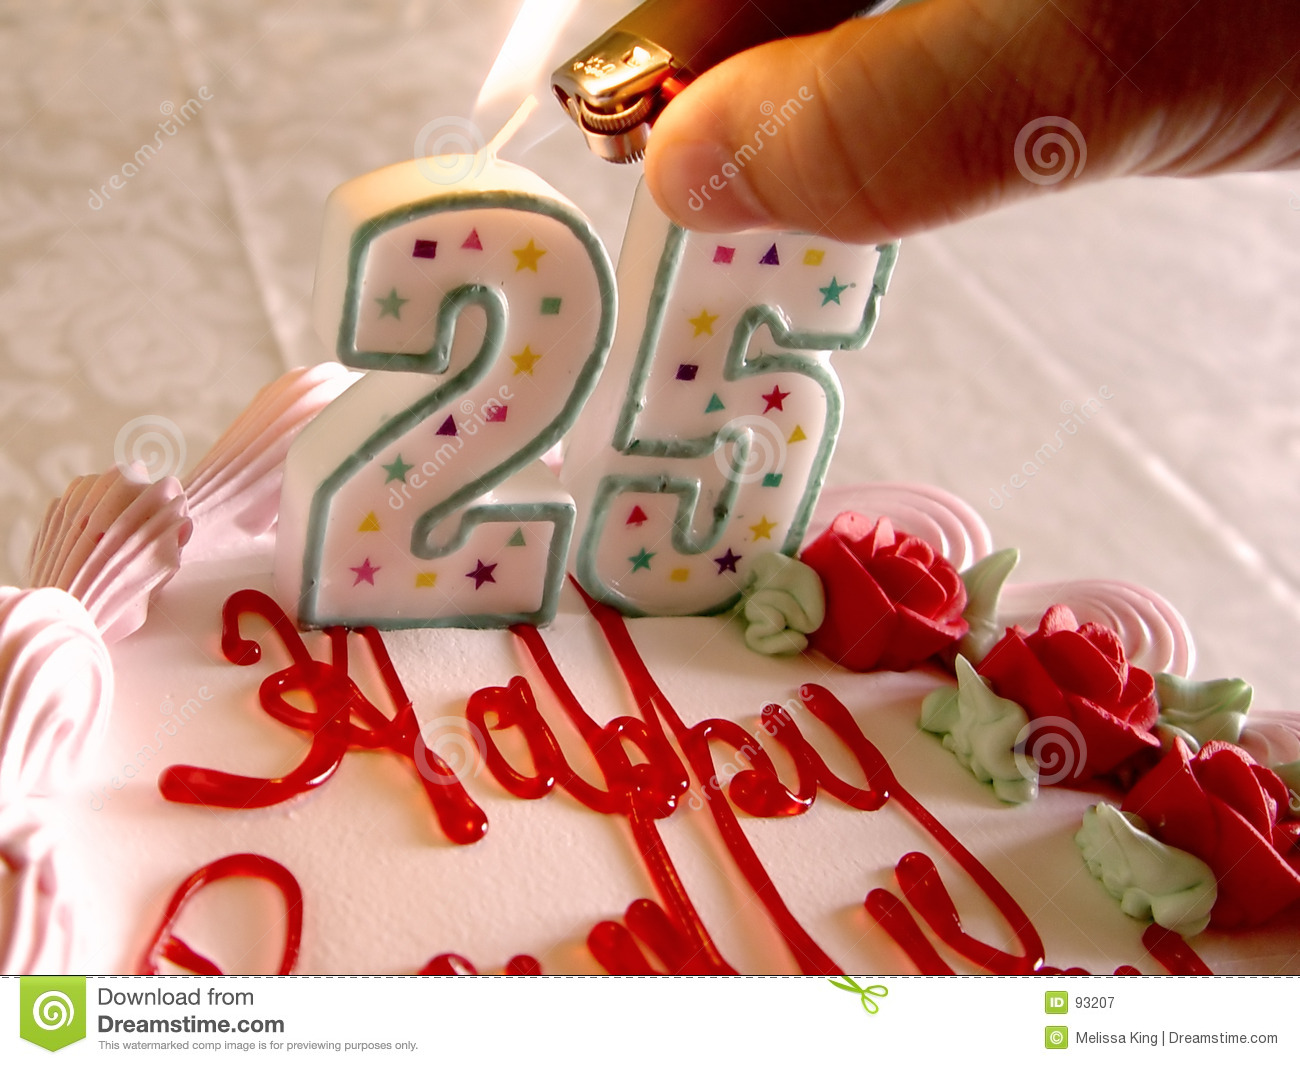 Lighting Birthday Candles For Someone Who Is 25 Years Old